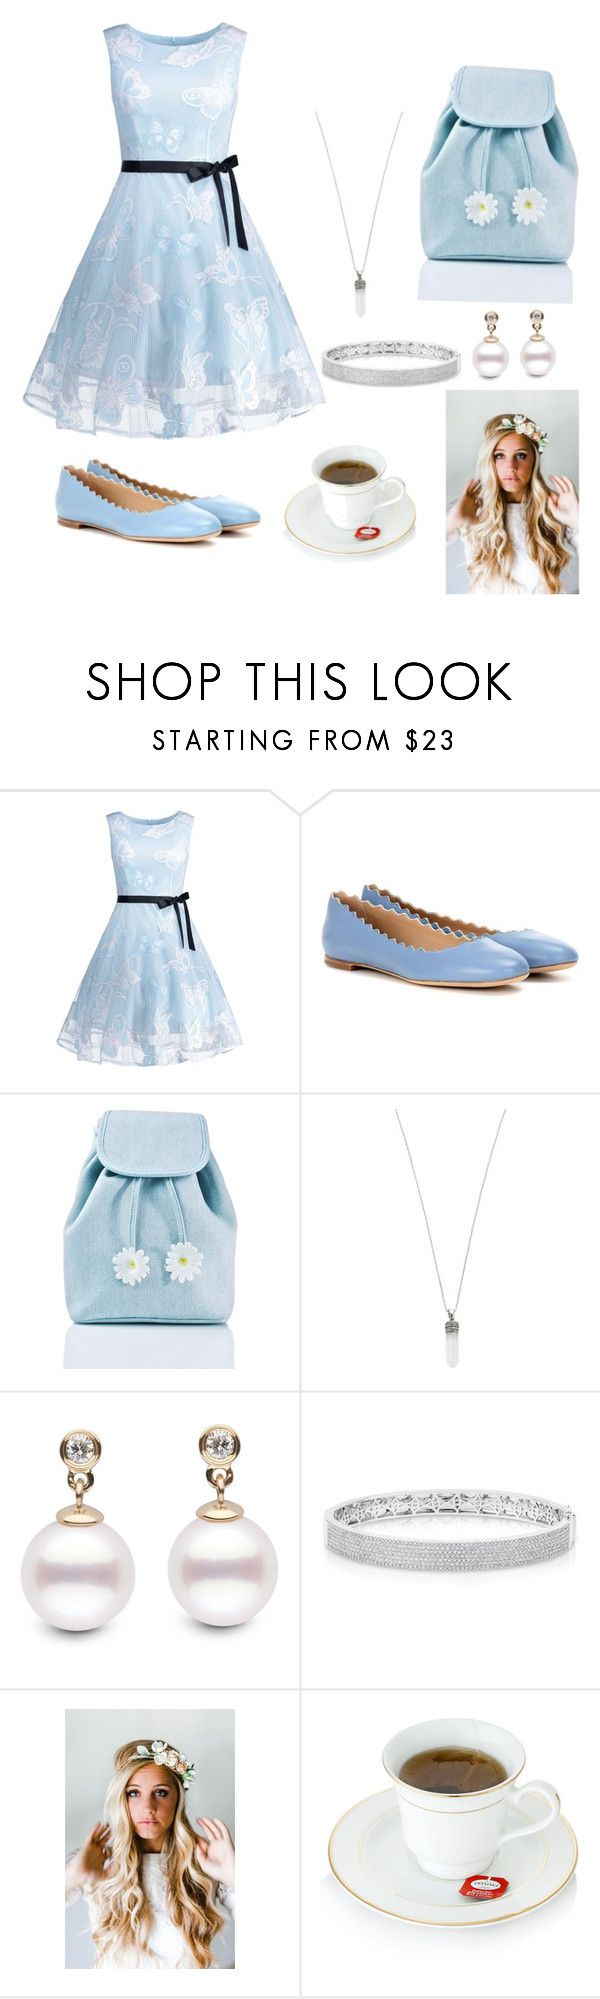 """Alice in wonderland"" by cmdiskin ❤ liked on Polyvore featuring Chloé, Sugarbaby, Marc Jacobs, Anne Sisteron and Emily Rose Flower Crowns"